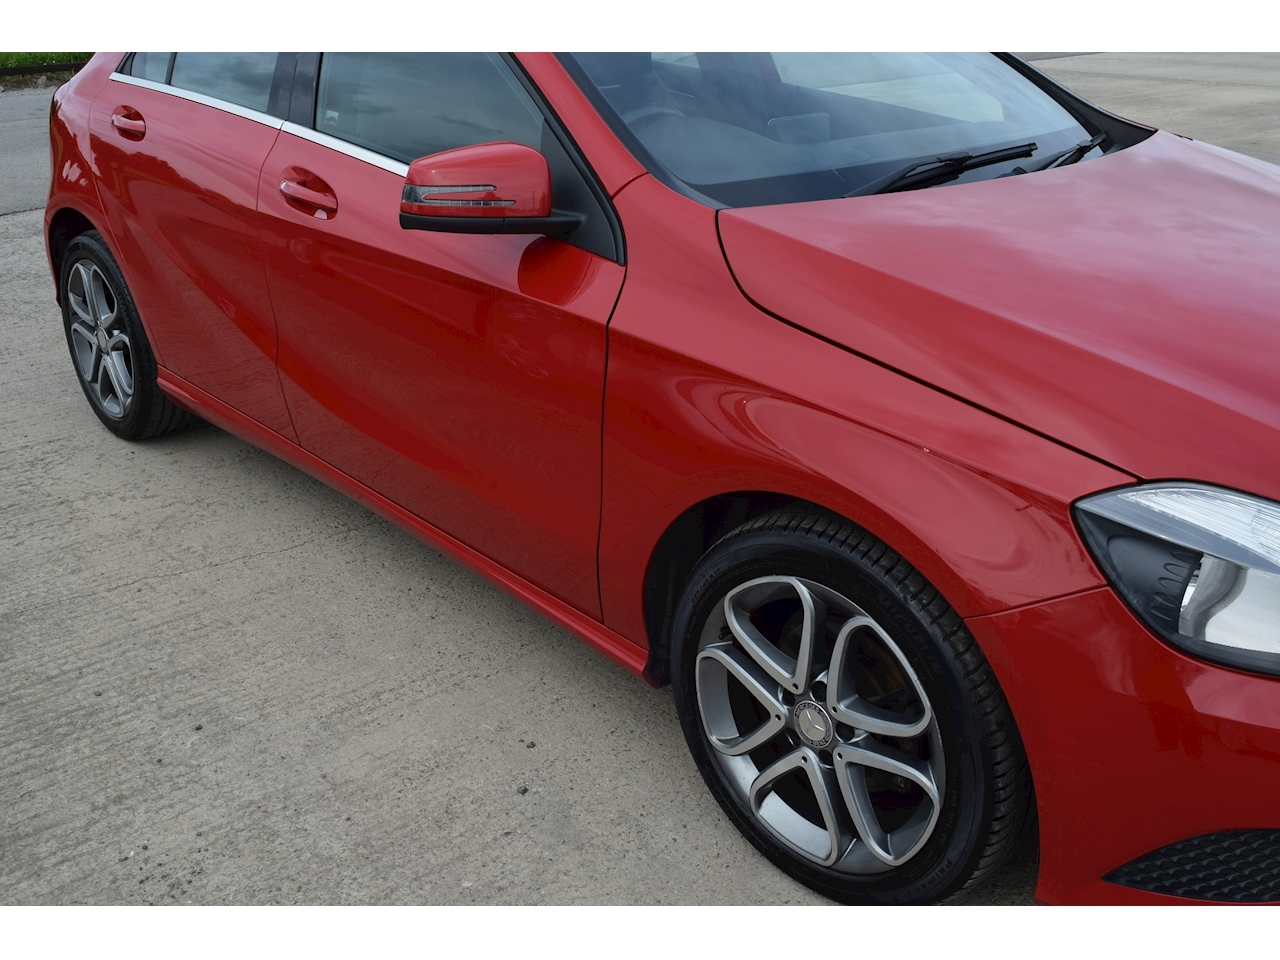 Mercedes-Benz A Class Sport Hatchback 1.5 Manual Diesel